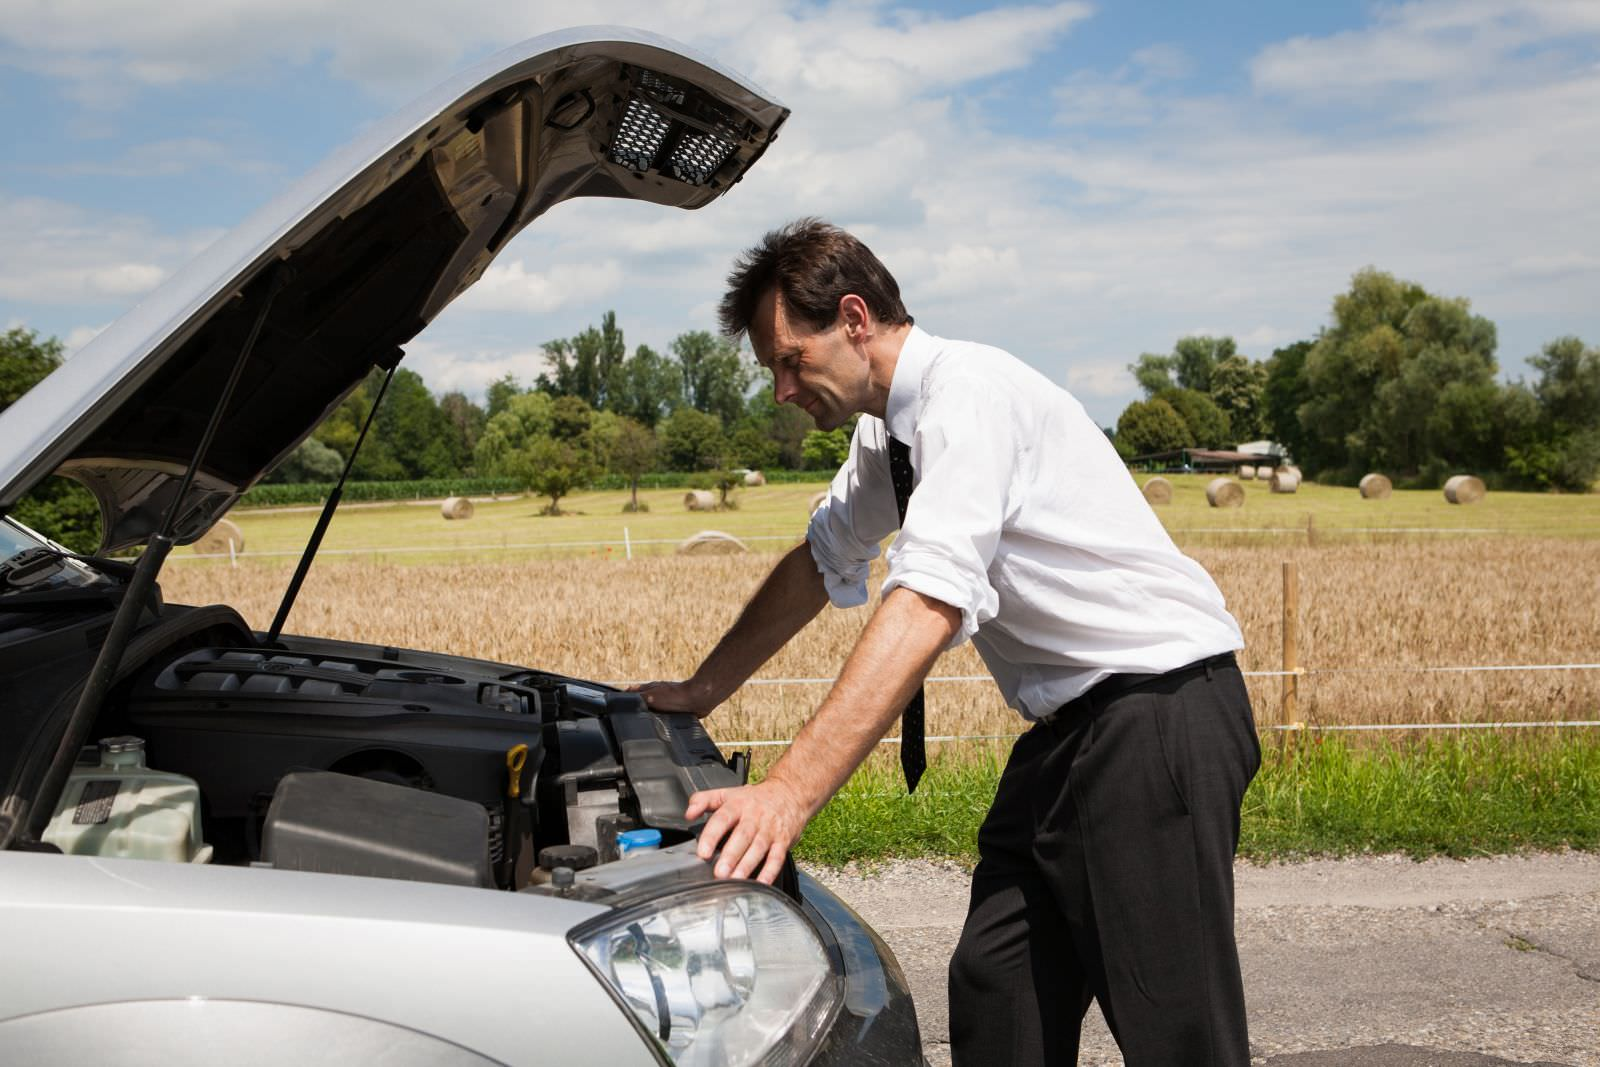 Car Recovery Wellington Free Towing + Cash for Broken Cars